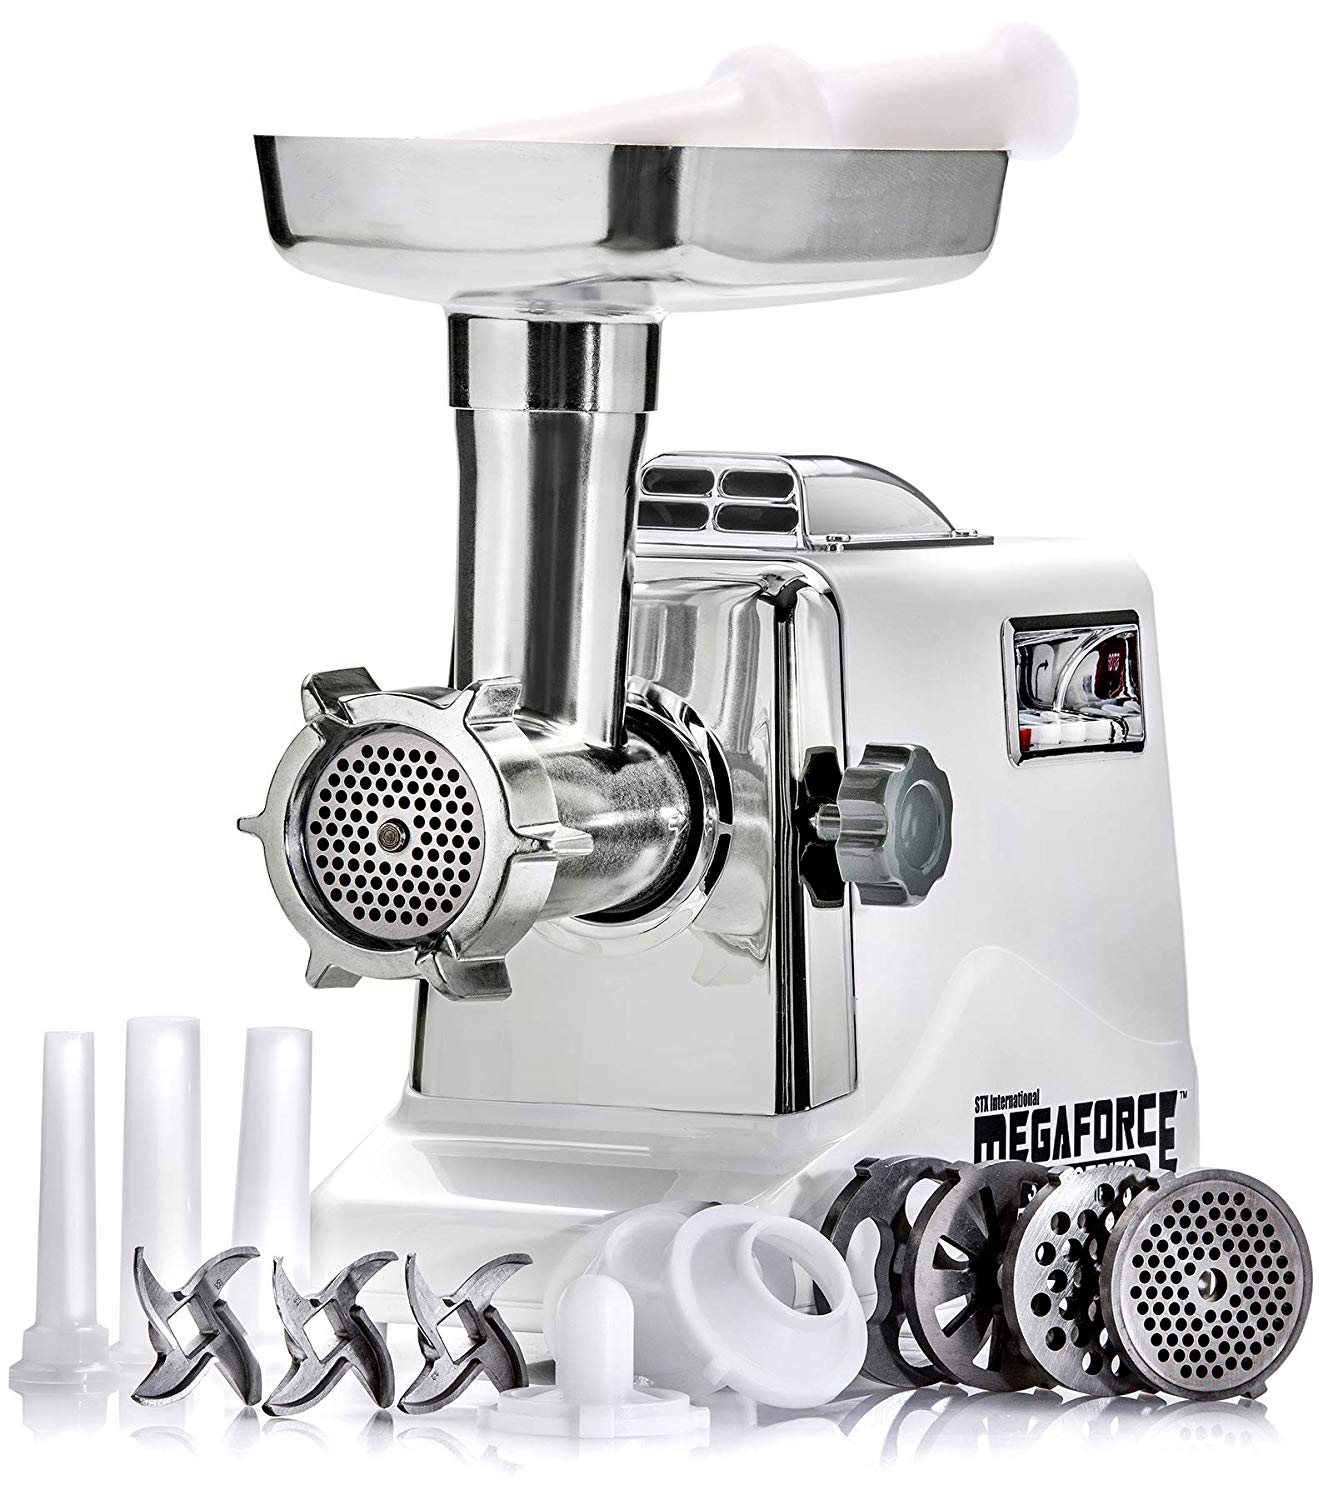 STX International Megaforce Heavy Duty 1200W Electric Meat Grinder